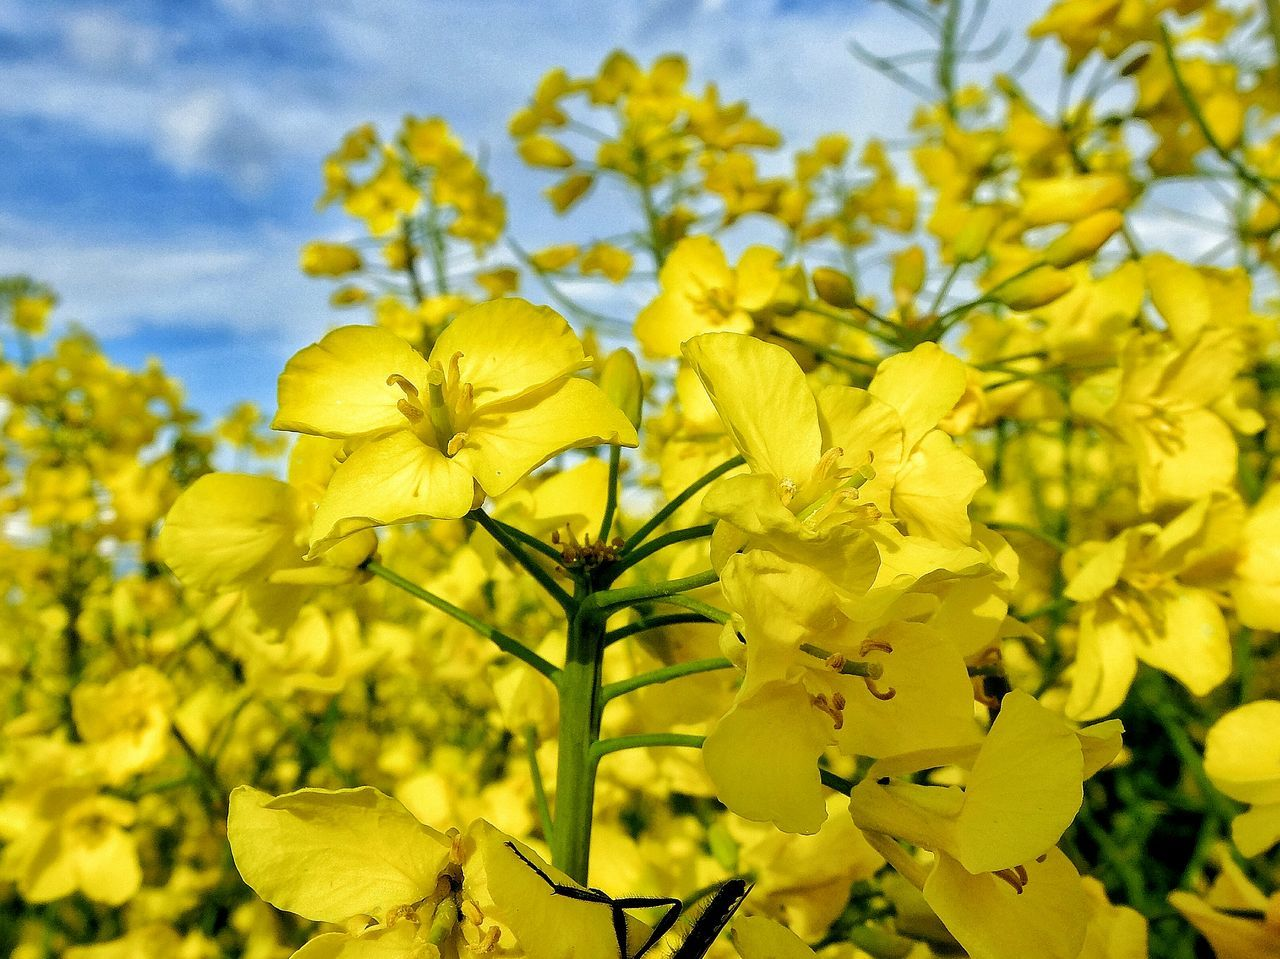 Yellow Plant Nature Flower Sky Beauty In Nature Agriculture Growth Outdoors Freshness Day No People Flower Head Rural Scene Tree Fragility Close-up Poland Warmia Summer Farm